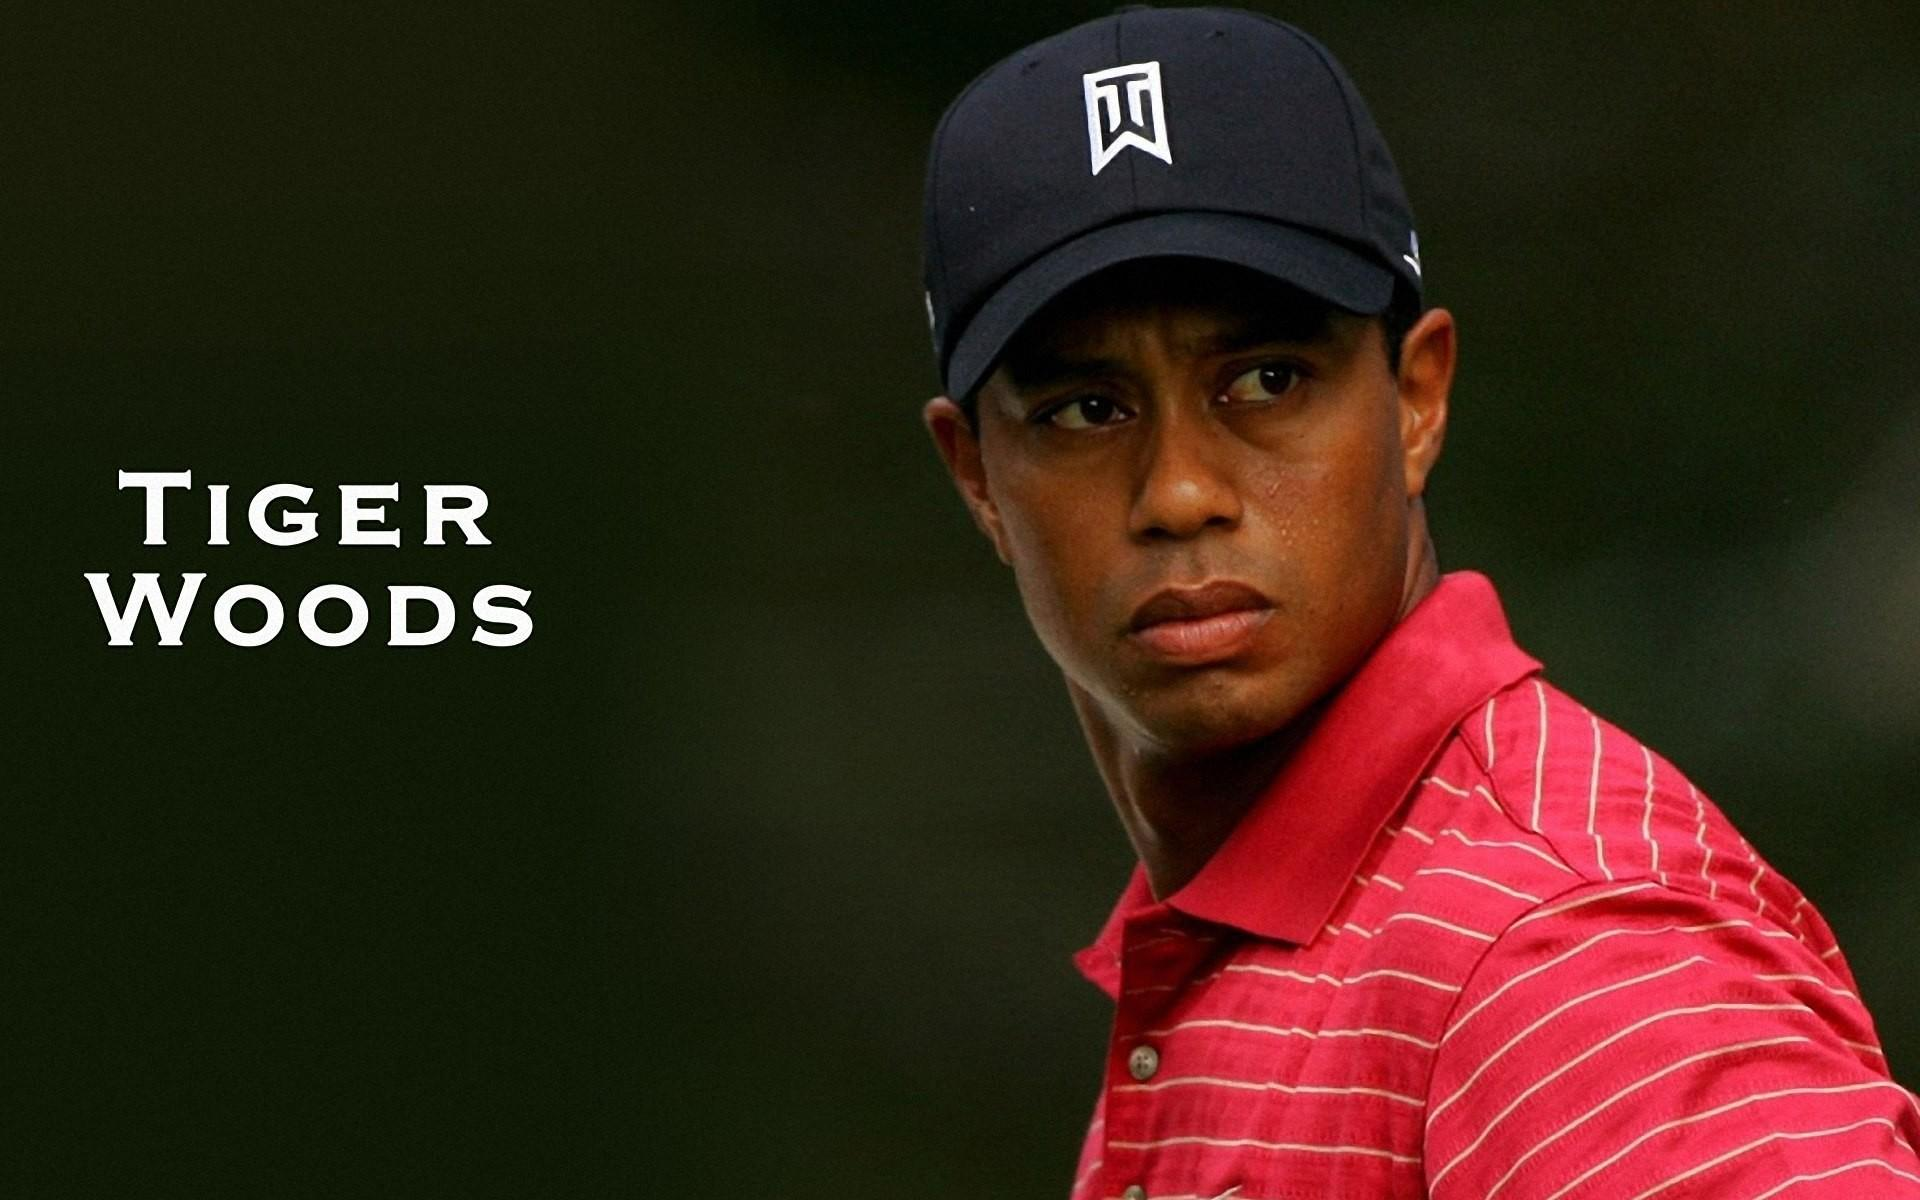 Latest On Tiger Woods 19 Cool Wallpaper